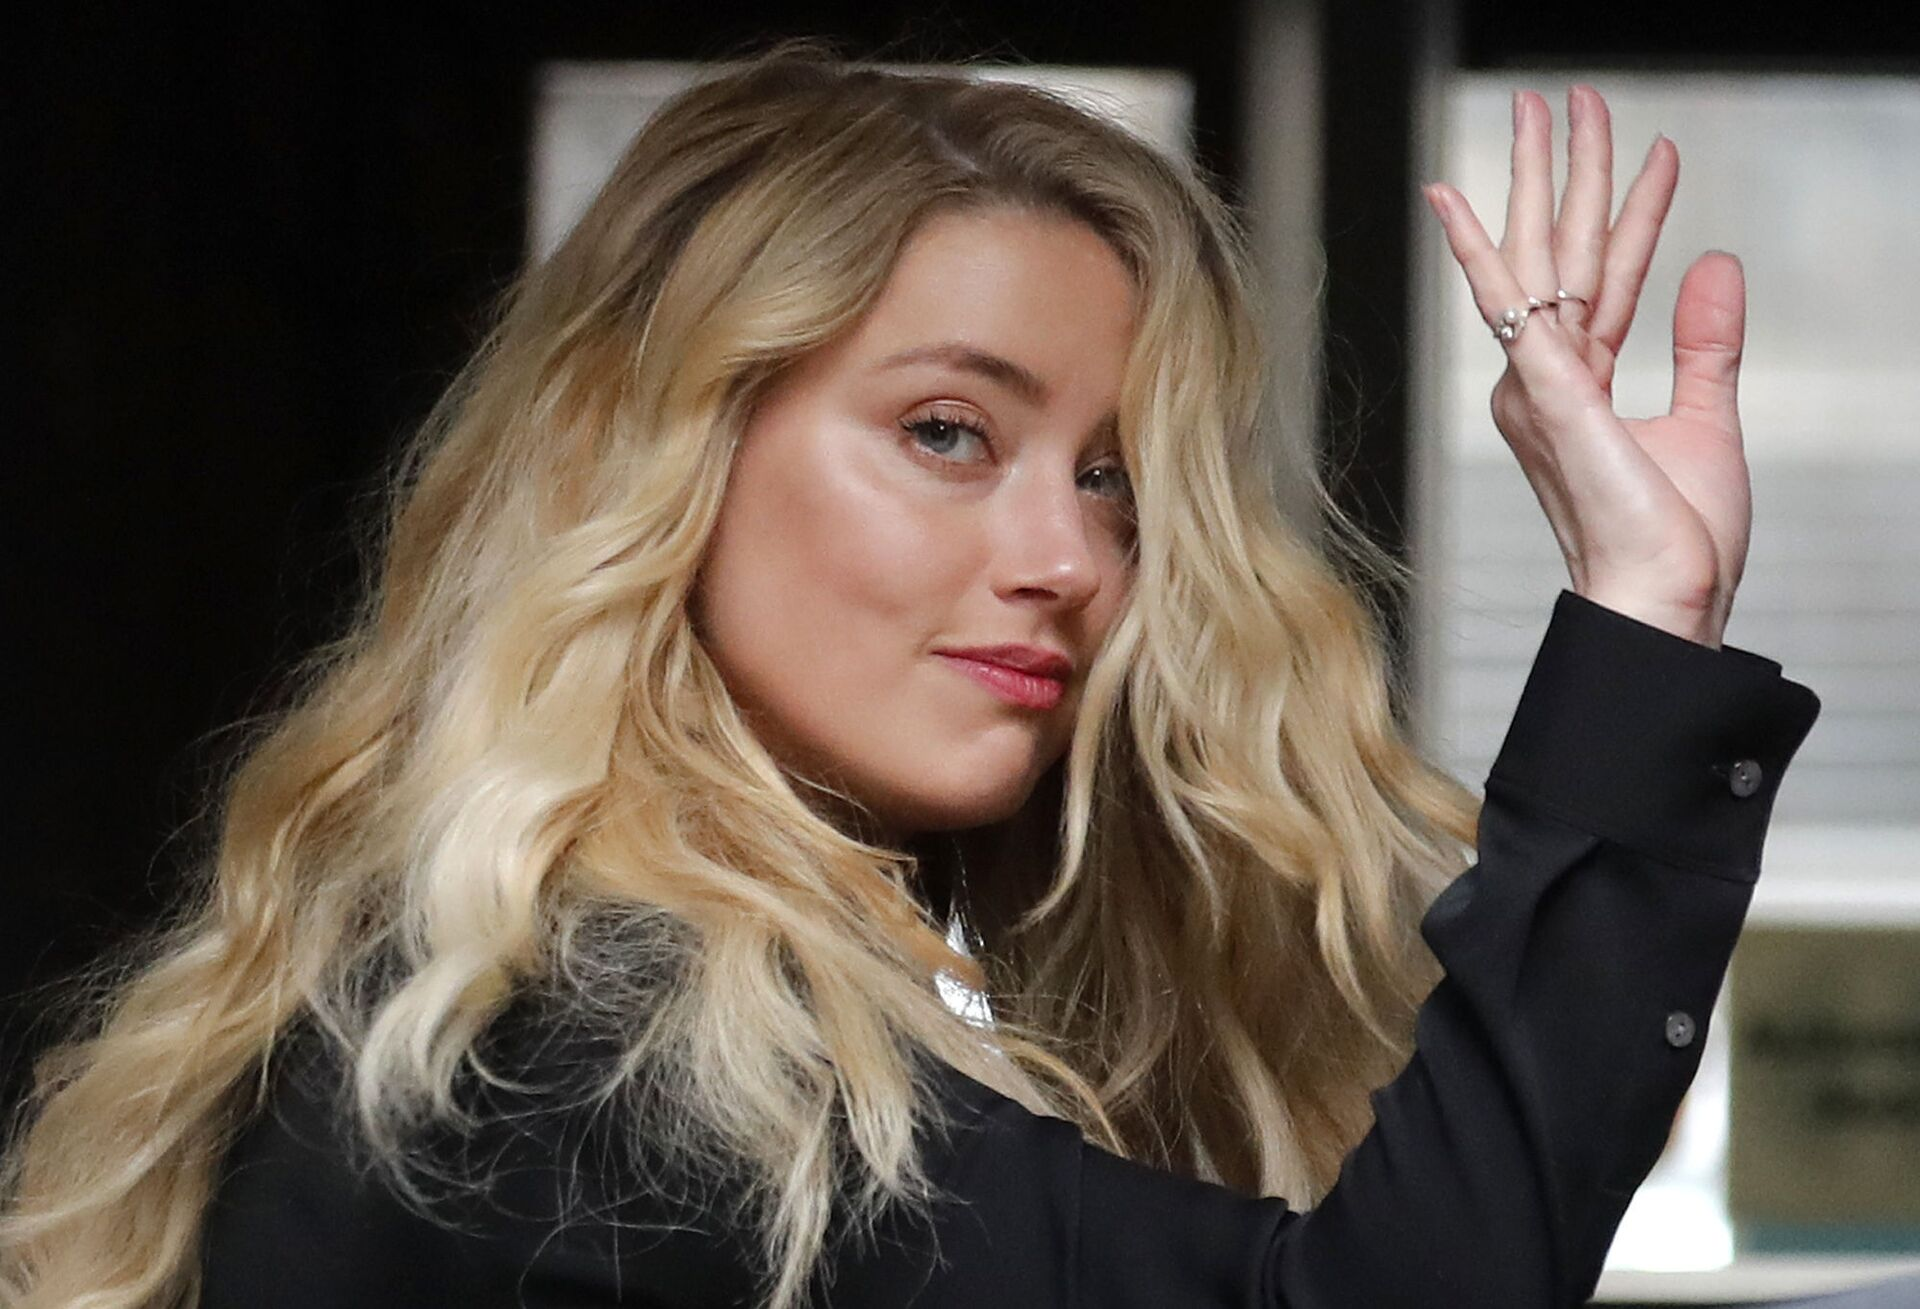 US Actress Amber Heard, former wife of actor Johnny Depp, arrives at the High Court in London, Tuesday, July 28, 2020.  - Sputnik International, 1920, 07.09.2021